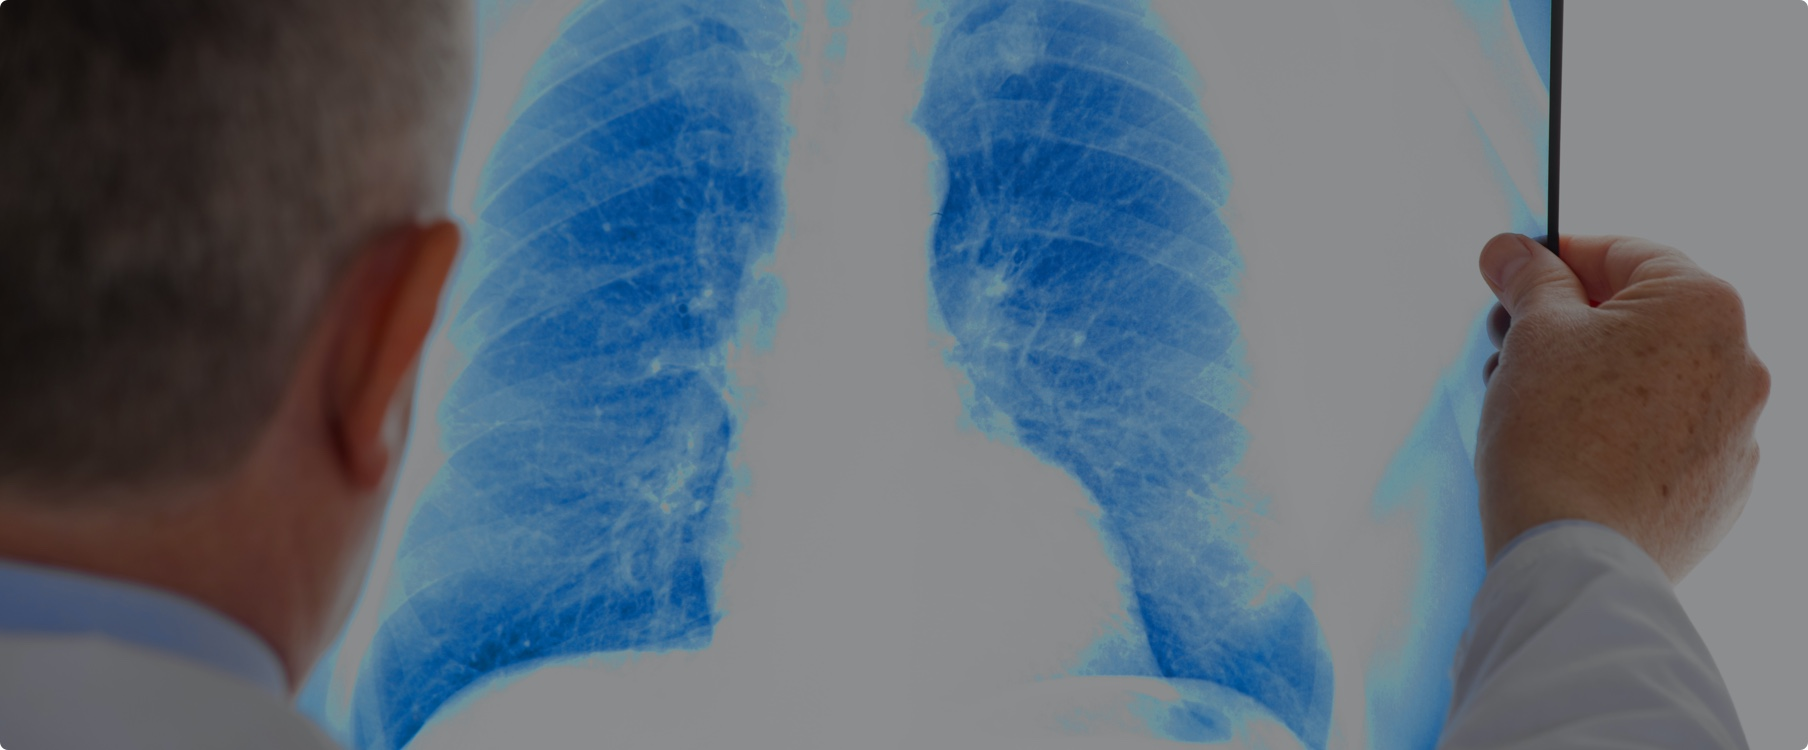 A doctor looking a chest x-ray image